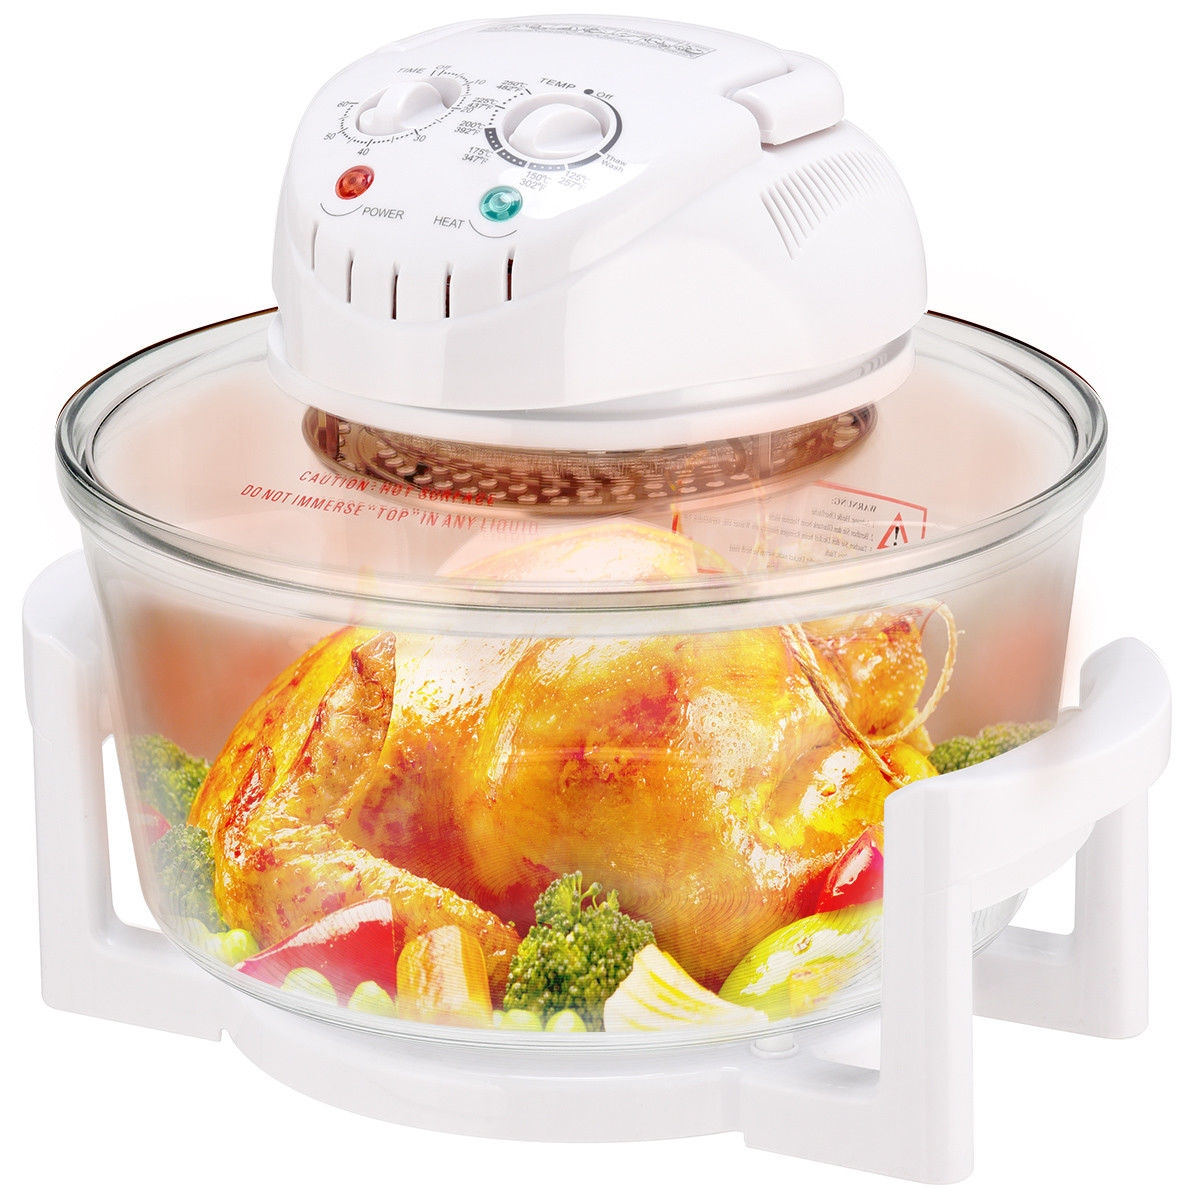 1300W Infrared Halogen Convection Turbo Oven